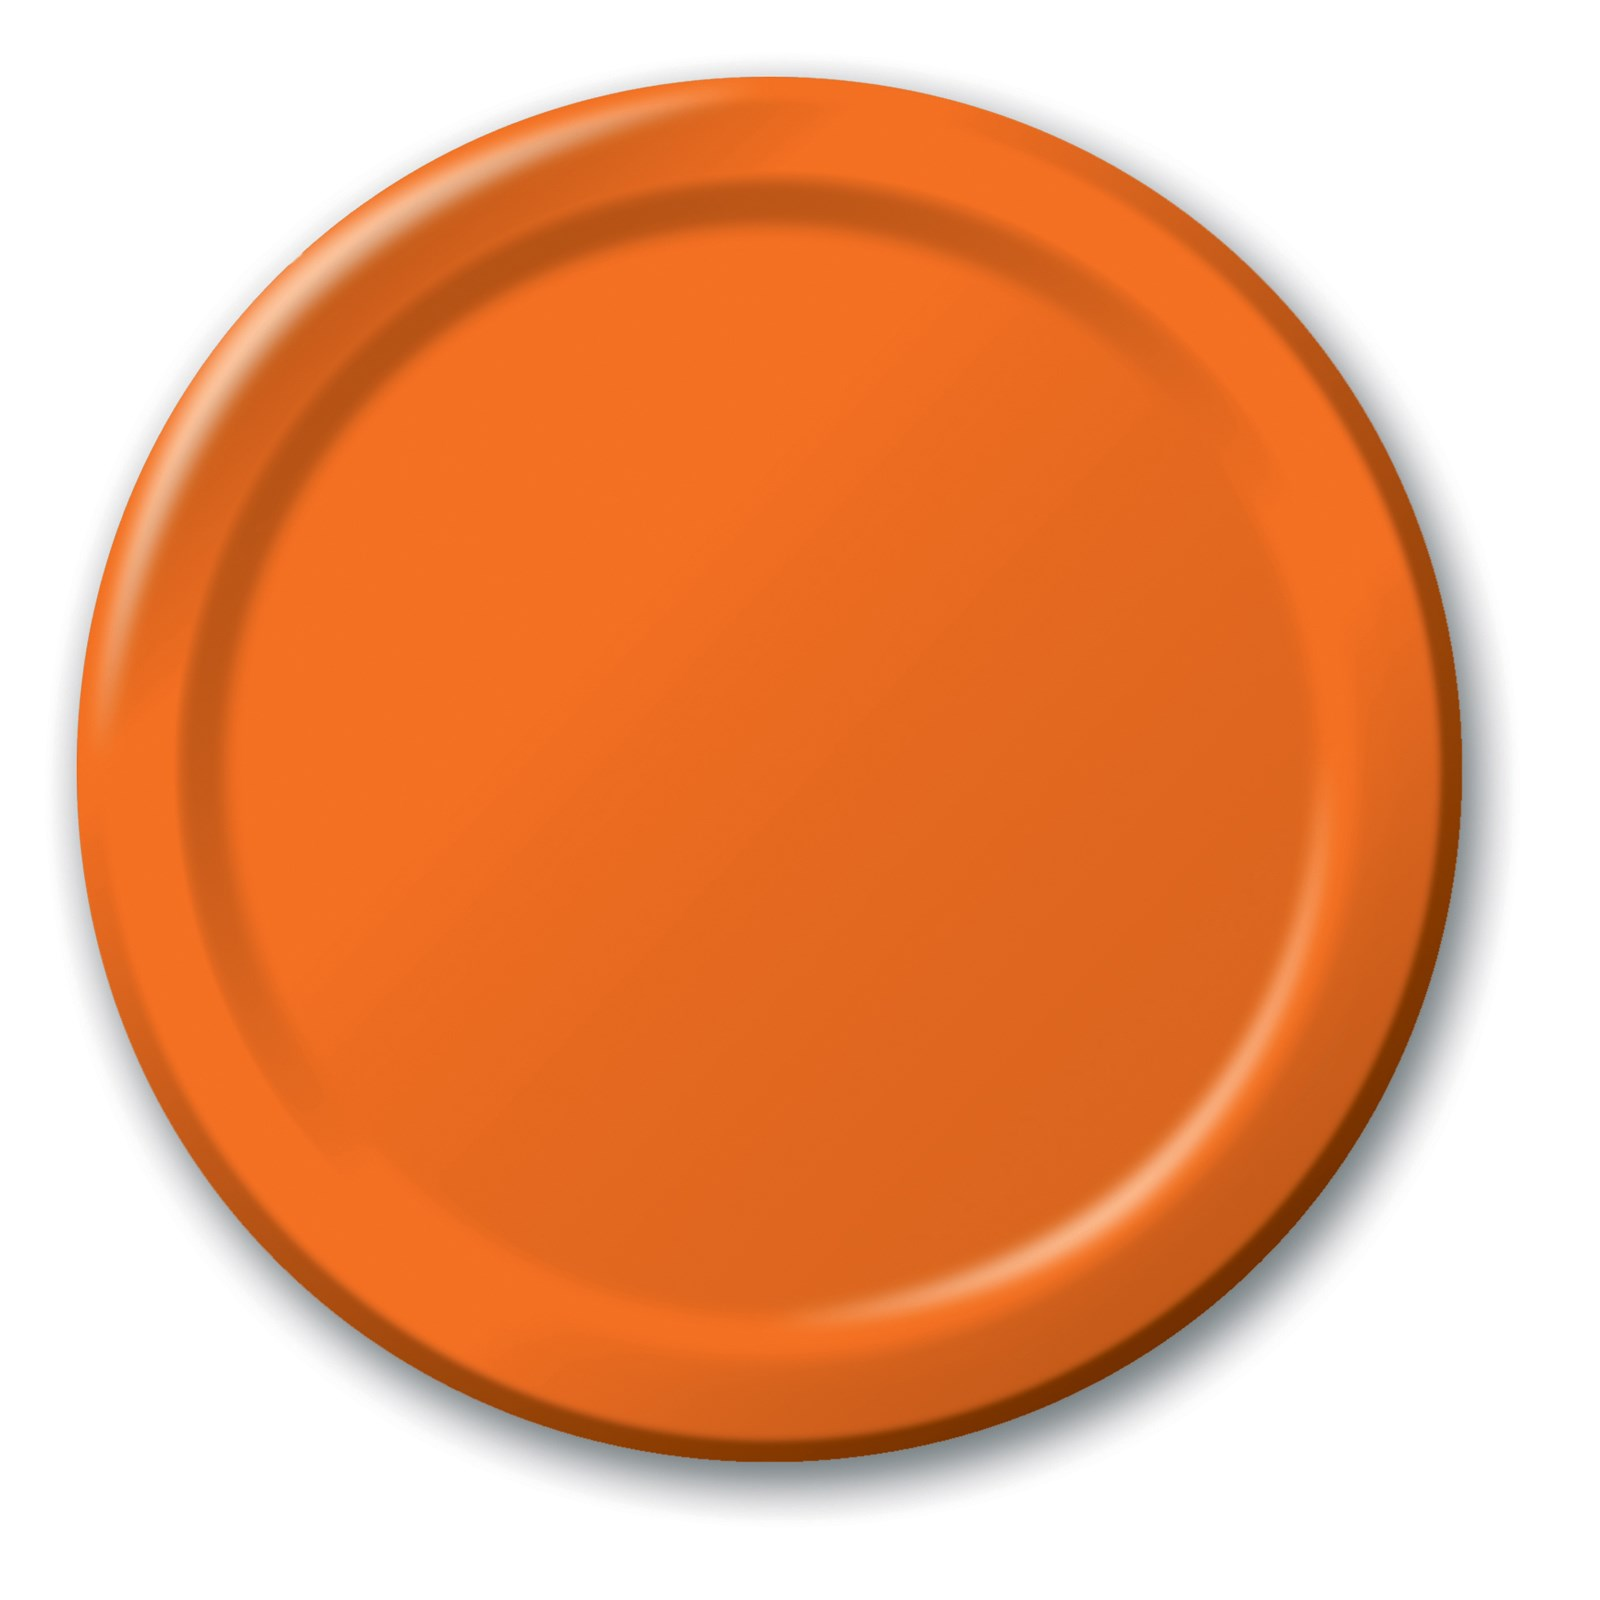 sunkissed orange orange dinner plates 24 count. Black Bedroom Furniture Sets. Home Design Ideas